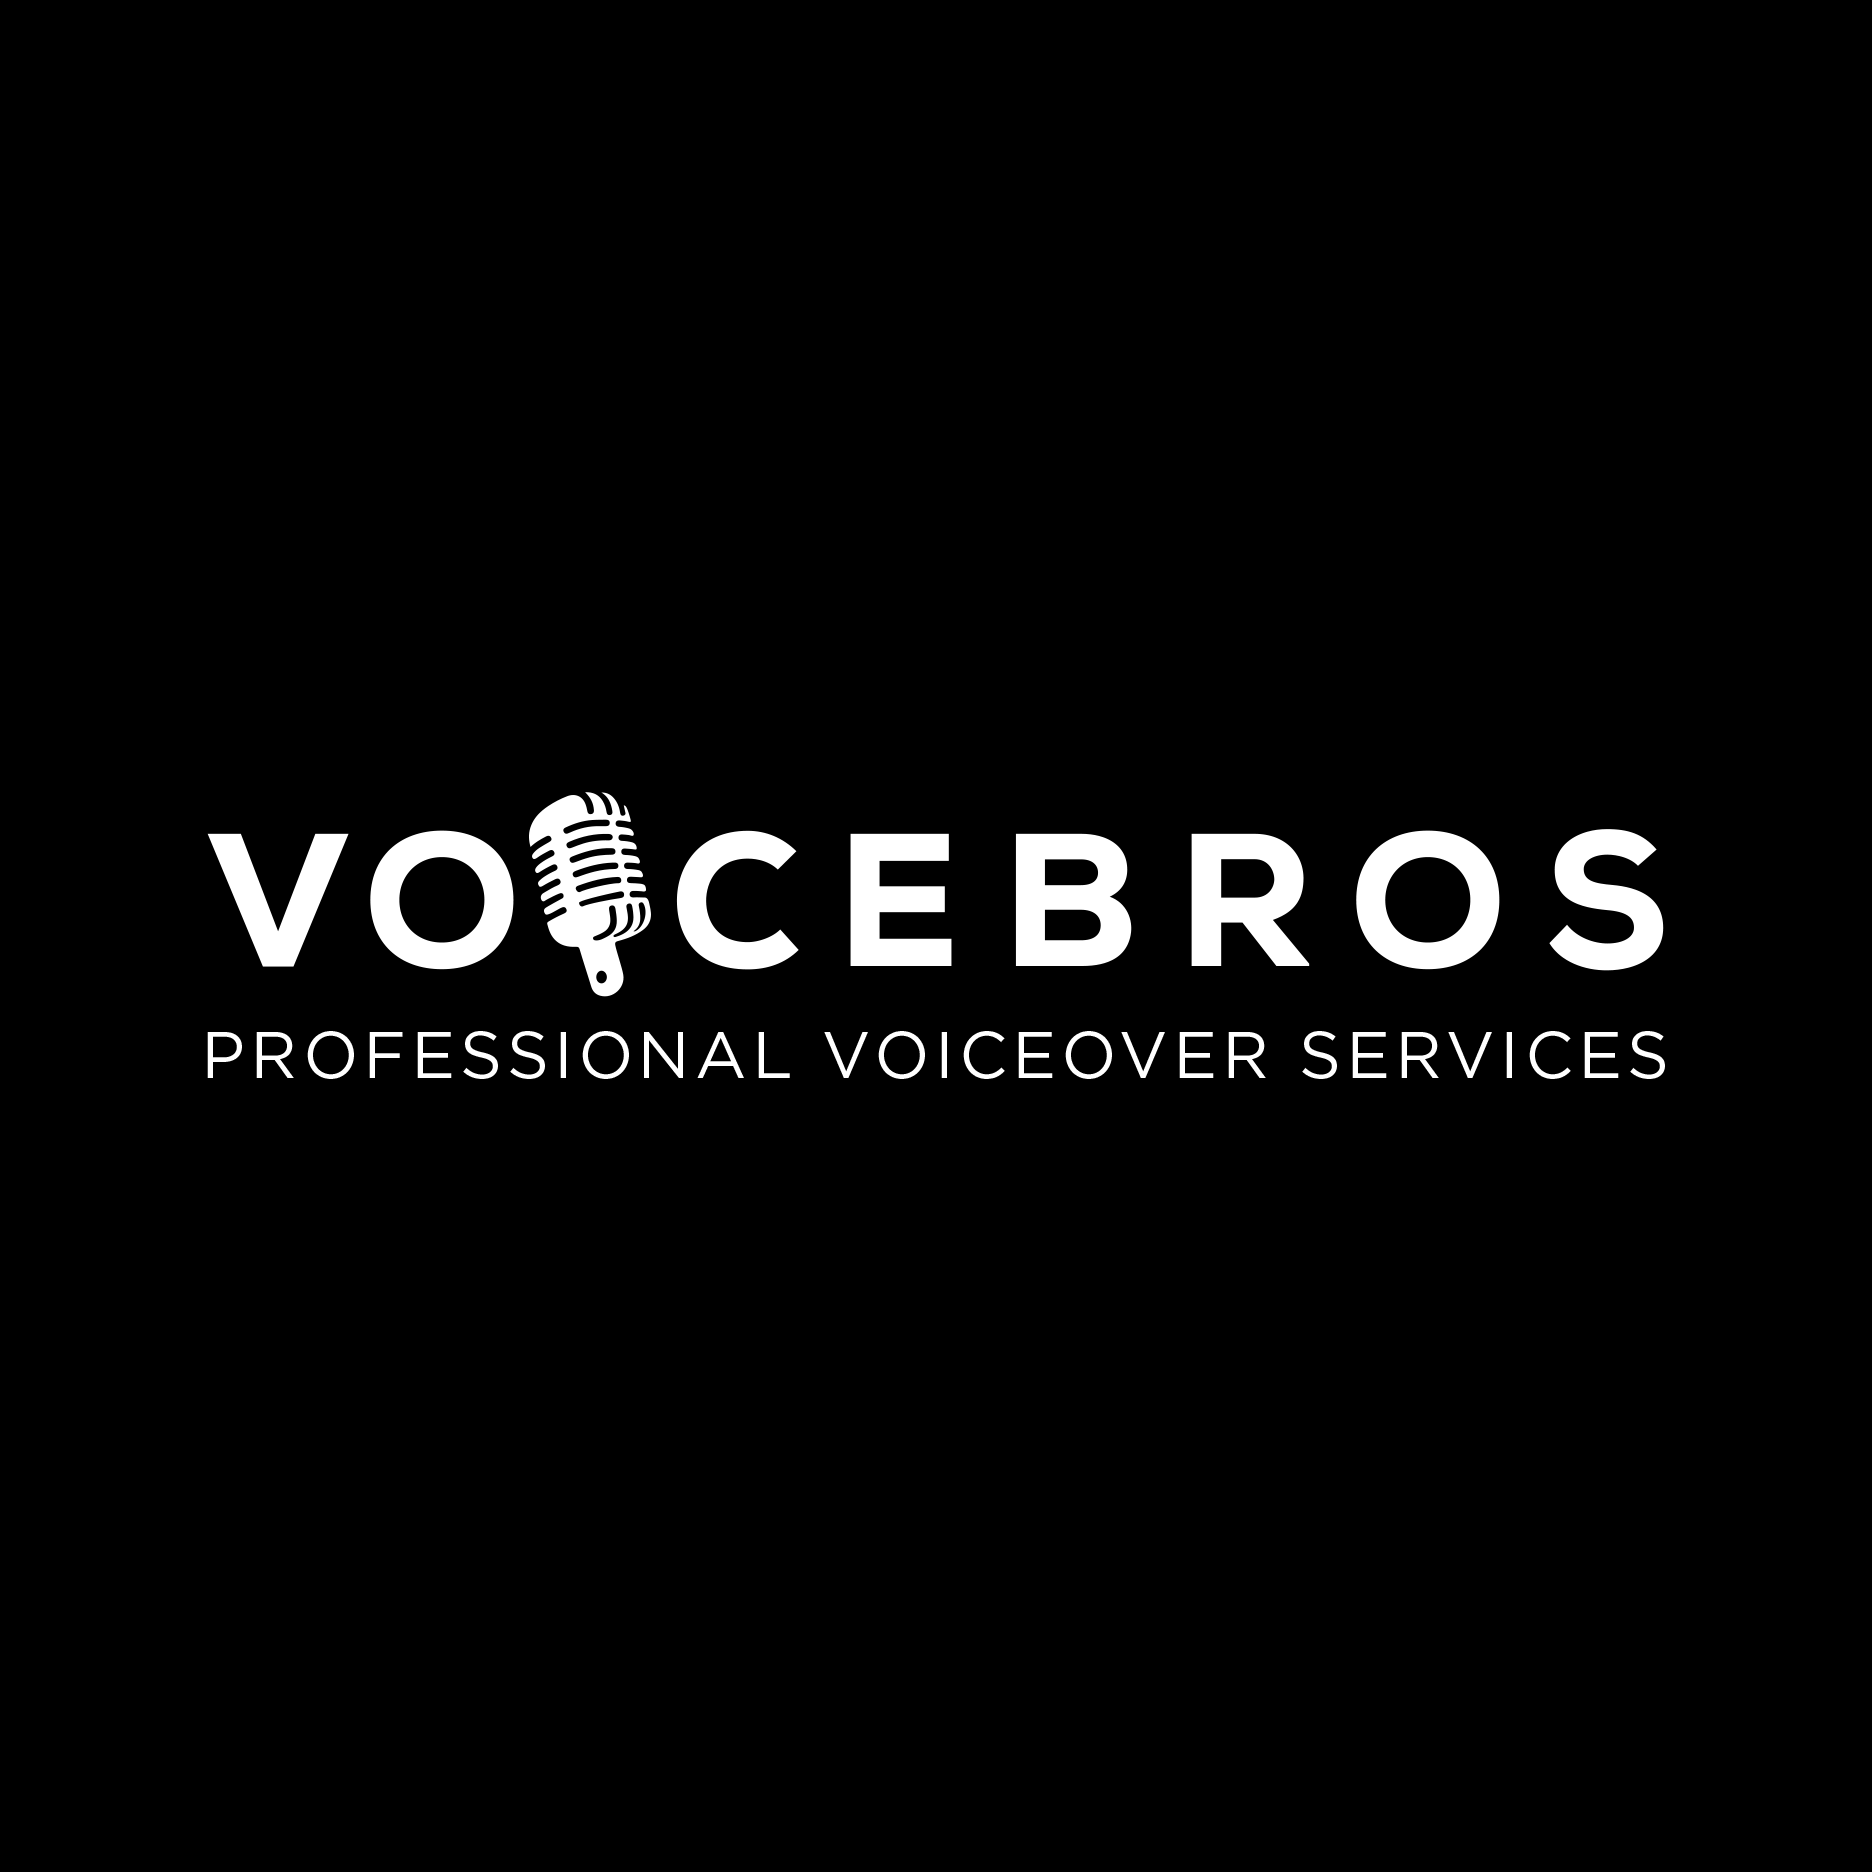 Hugo Picchi is a voice over actor